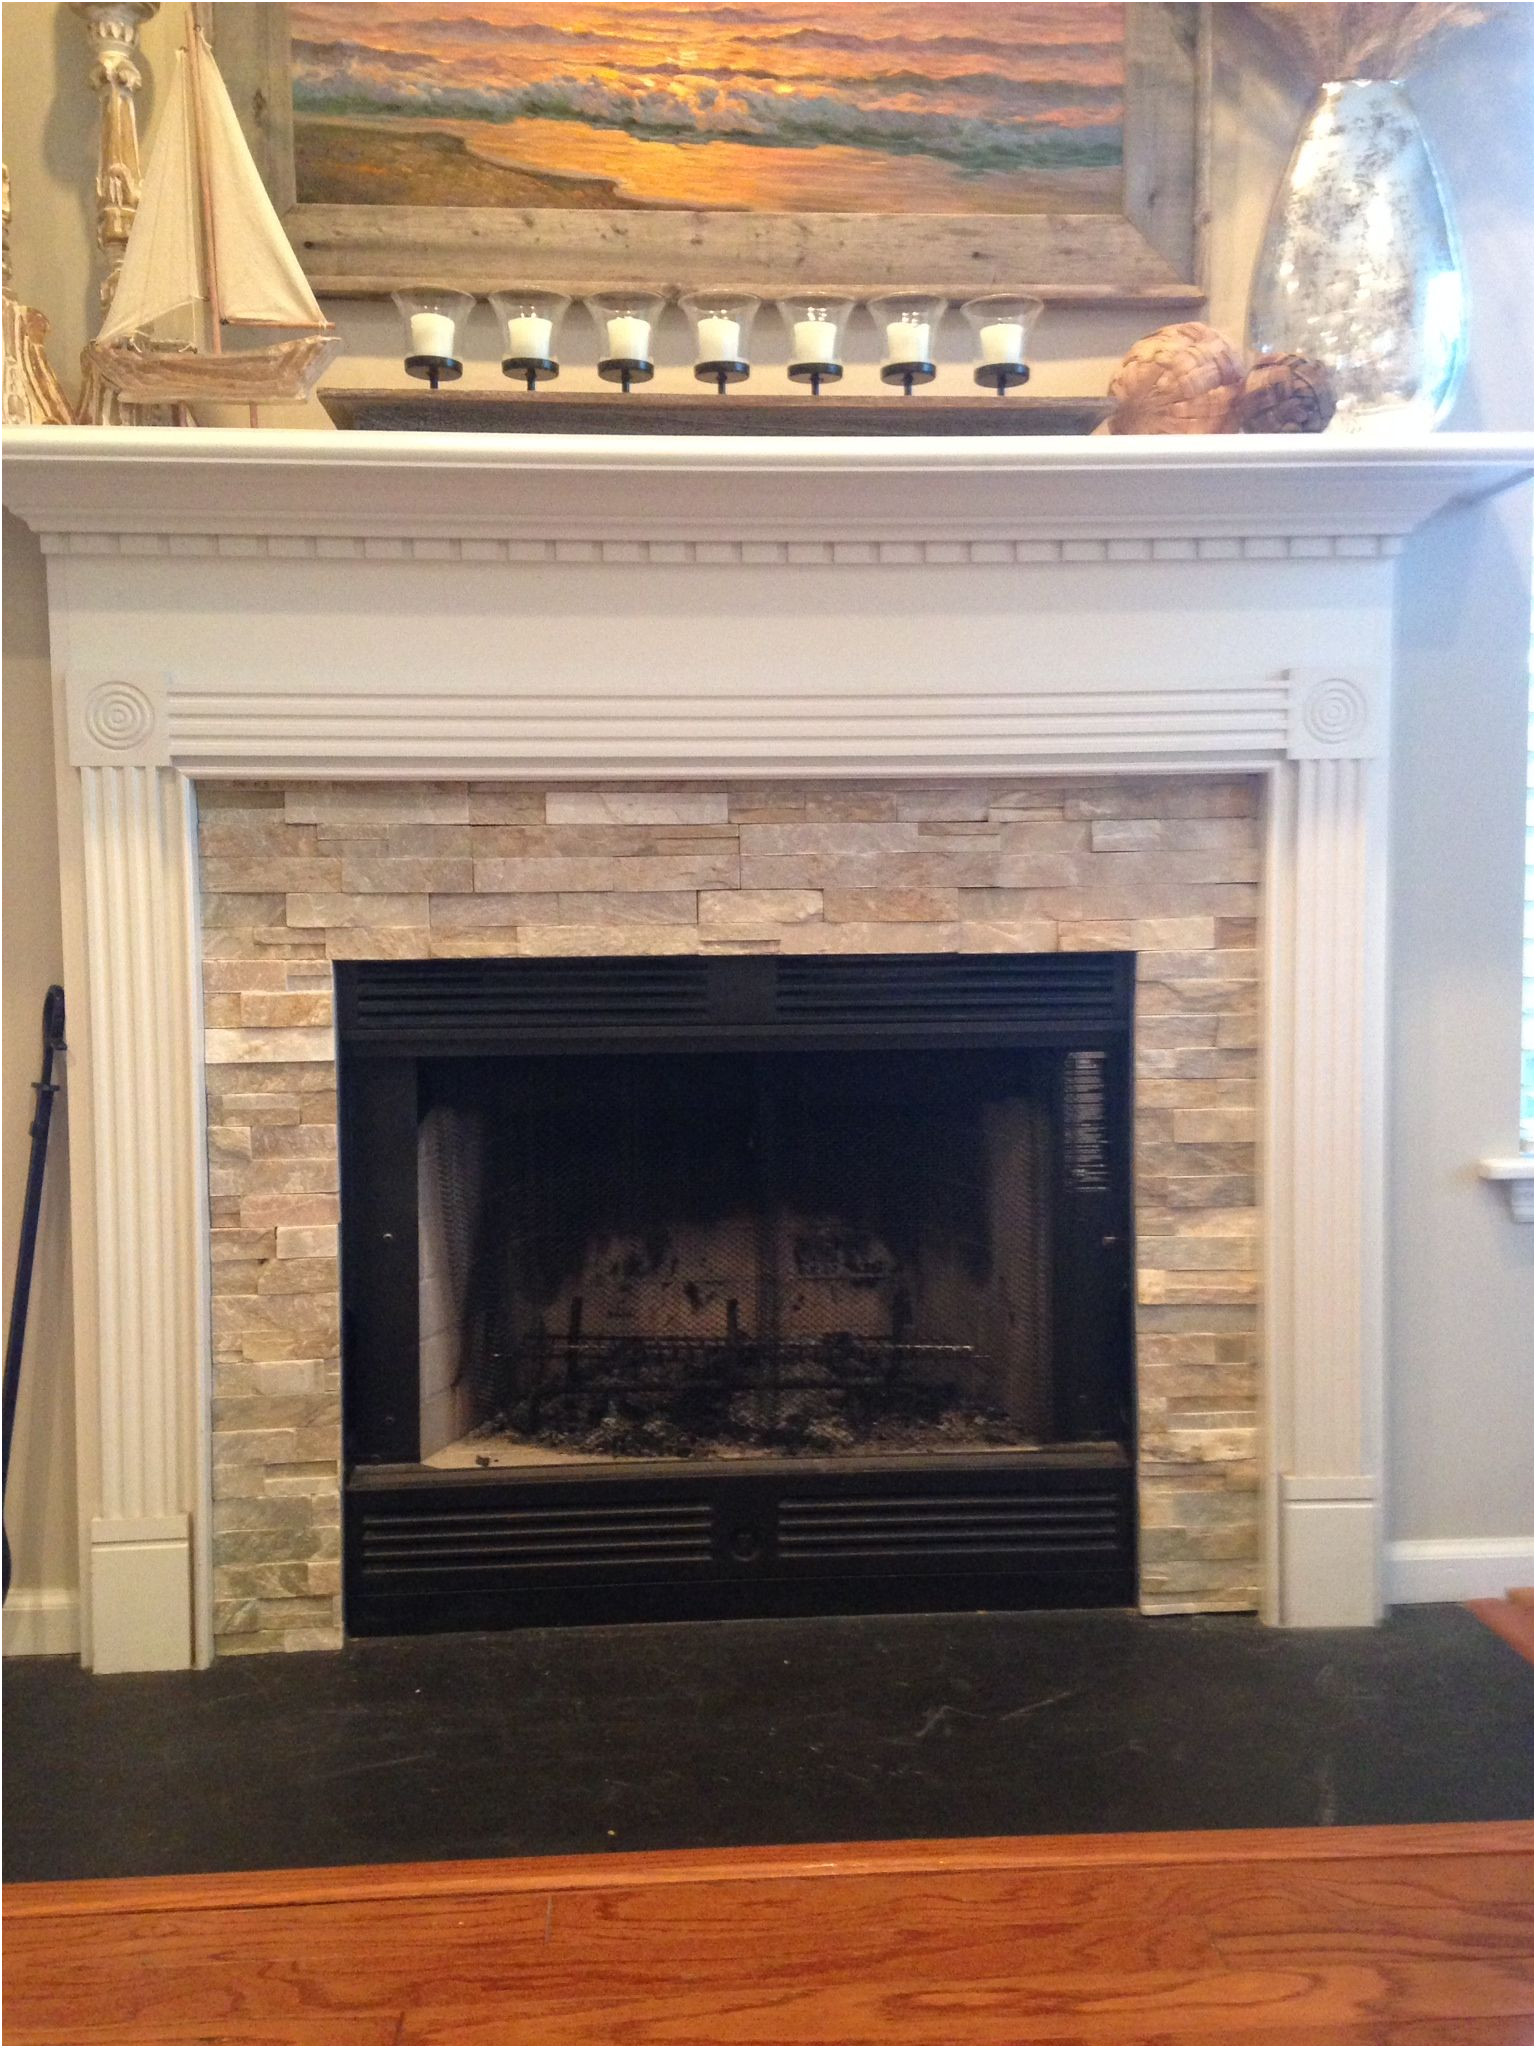 Fireplace Hearth Ideas Beautiful Fireplace Idea Mantel Wainscoting Design Craftsman